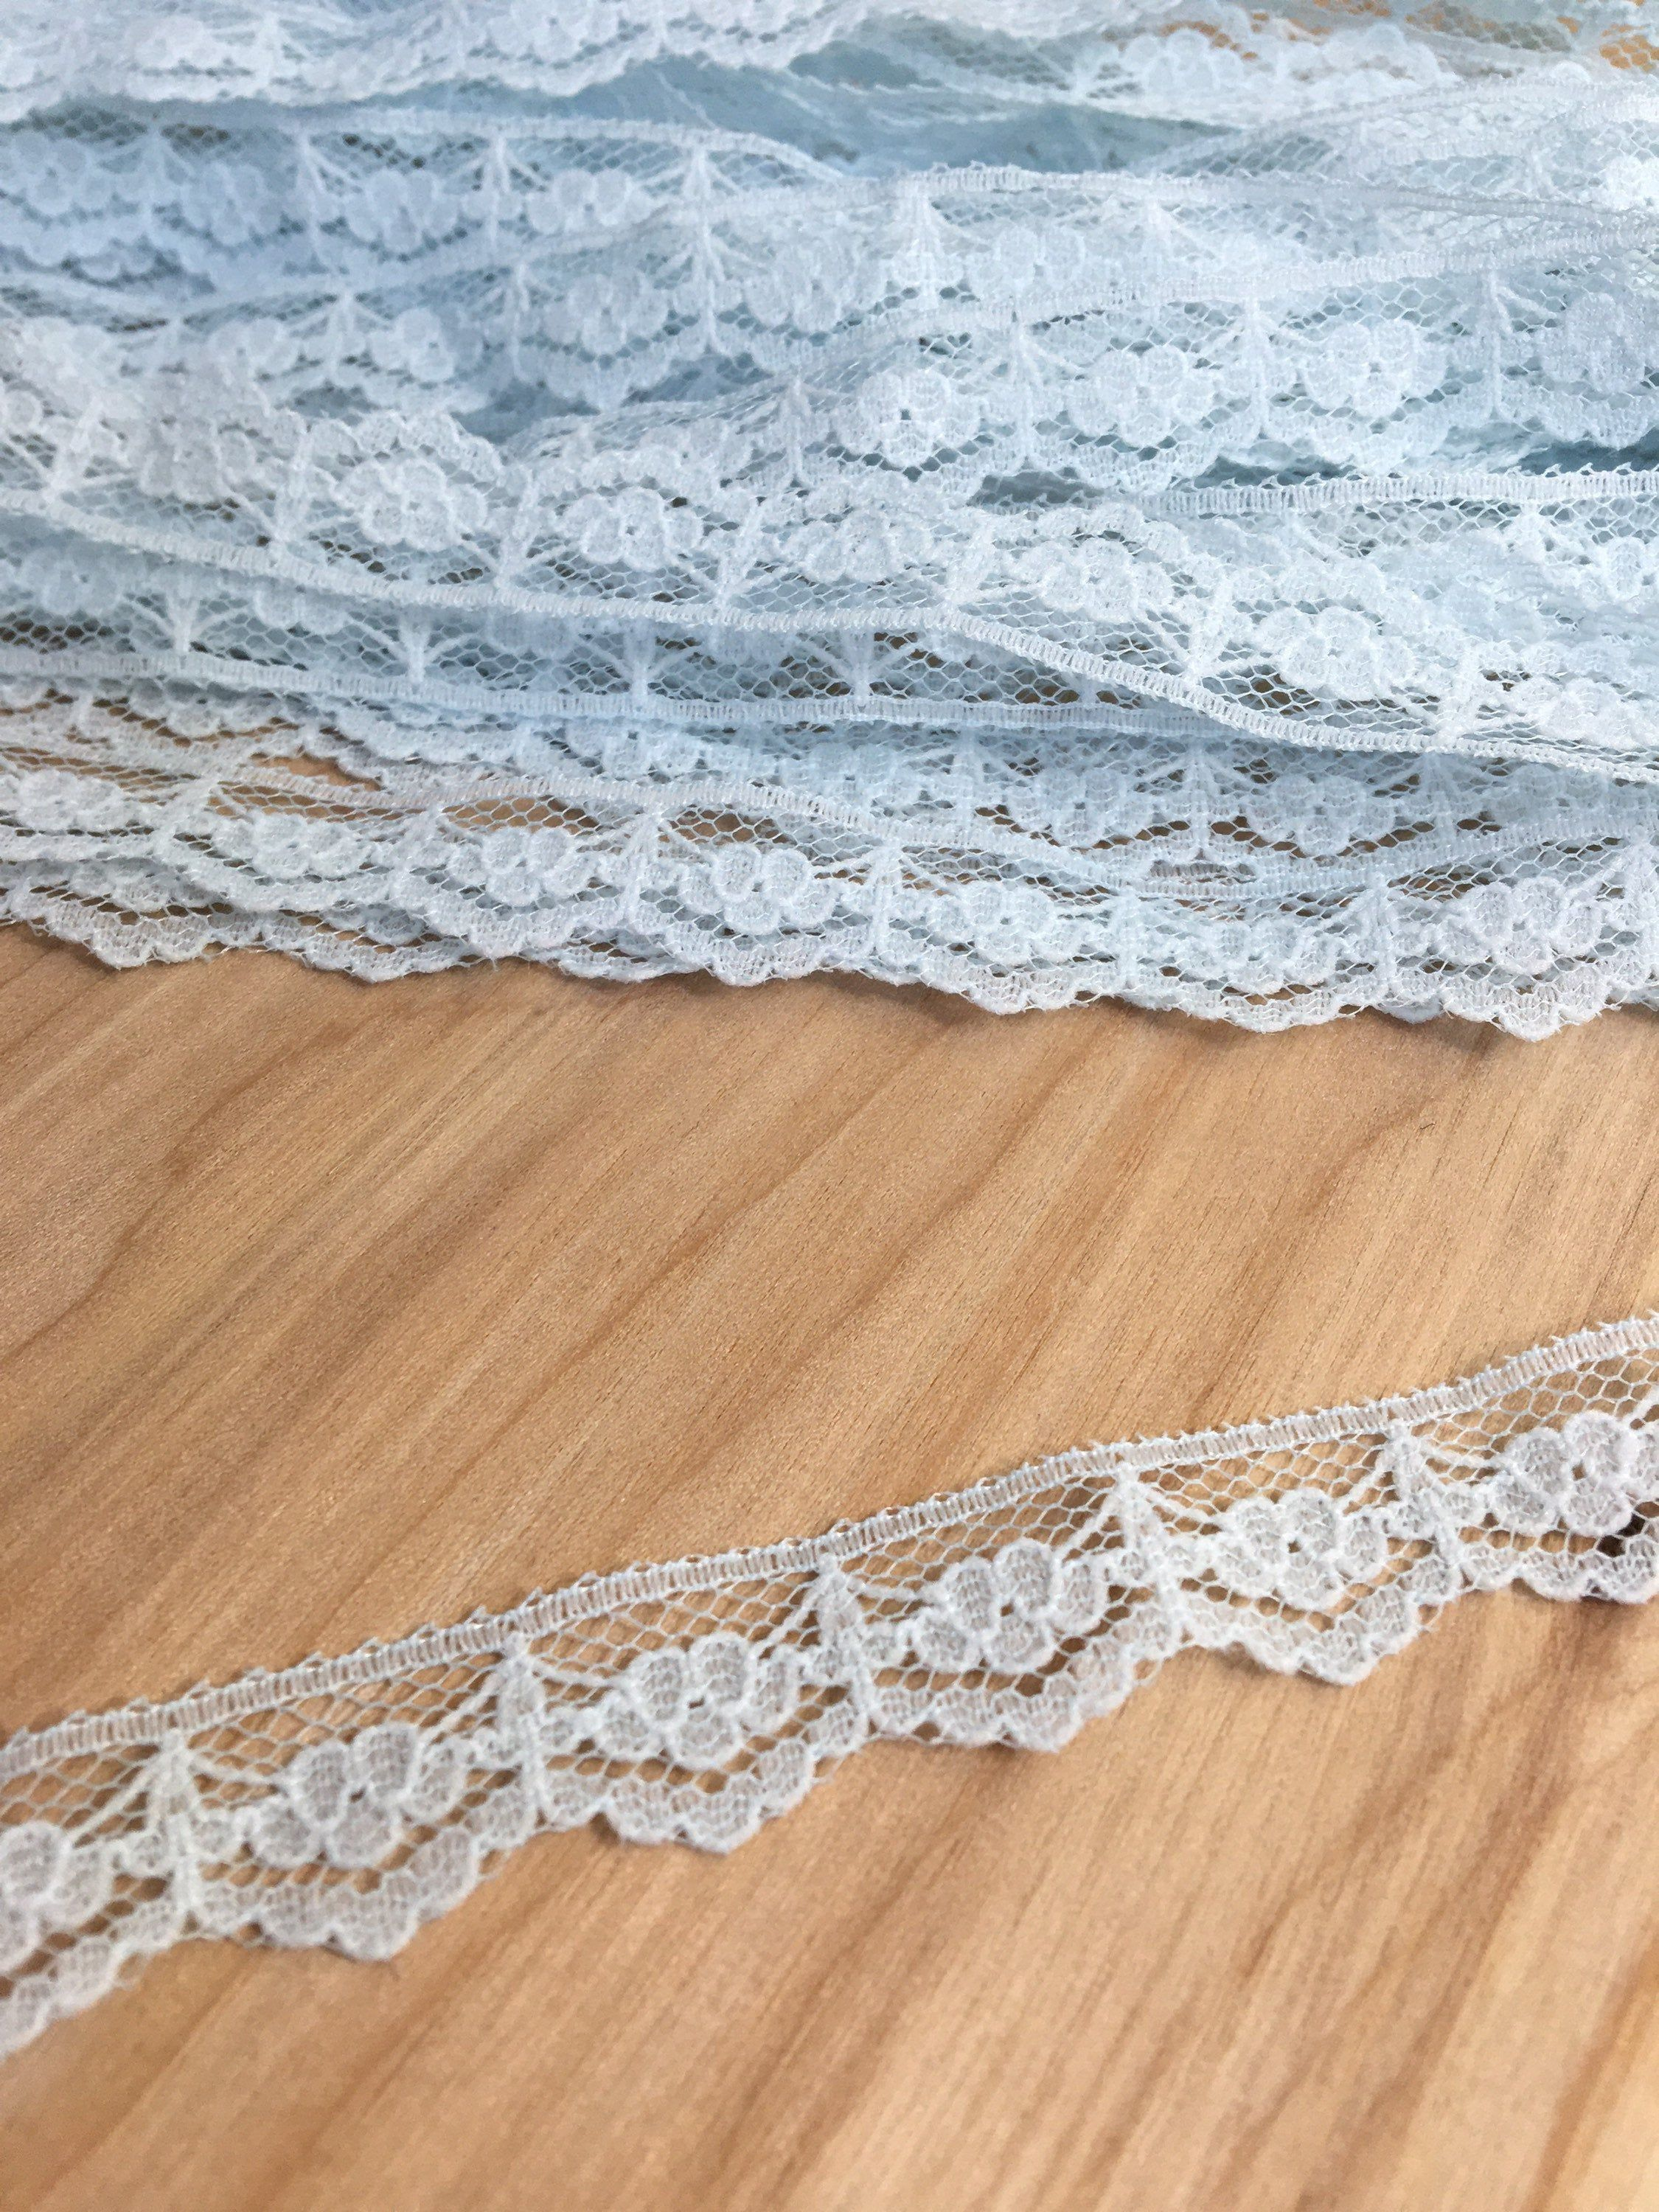 price for 1 yard Lovely GOLD with white ruffled lace trim 2 1//2 inch wide